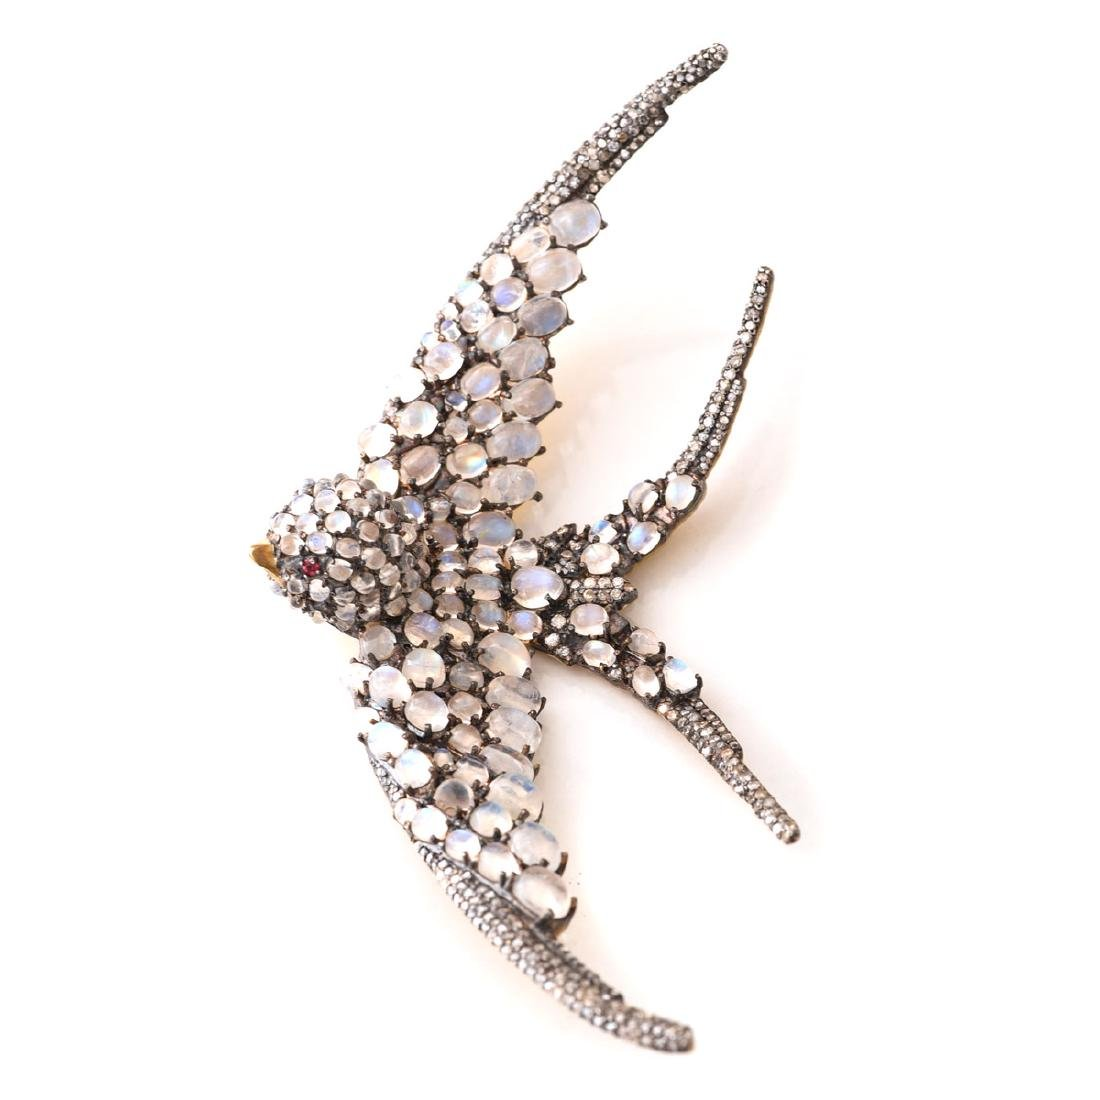 Moonstone, Diamond, Spinel, Silver-Gilt Swallow Pendant